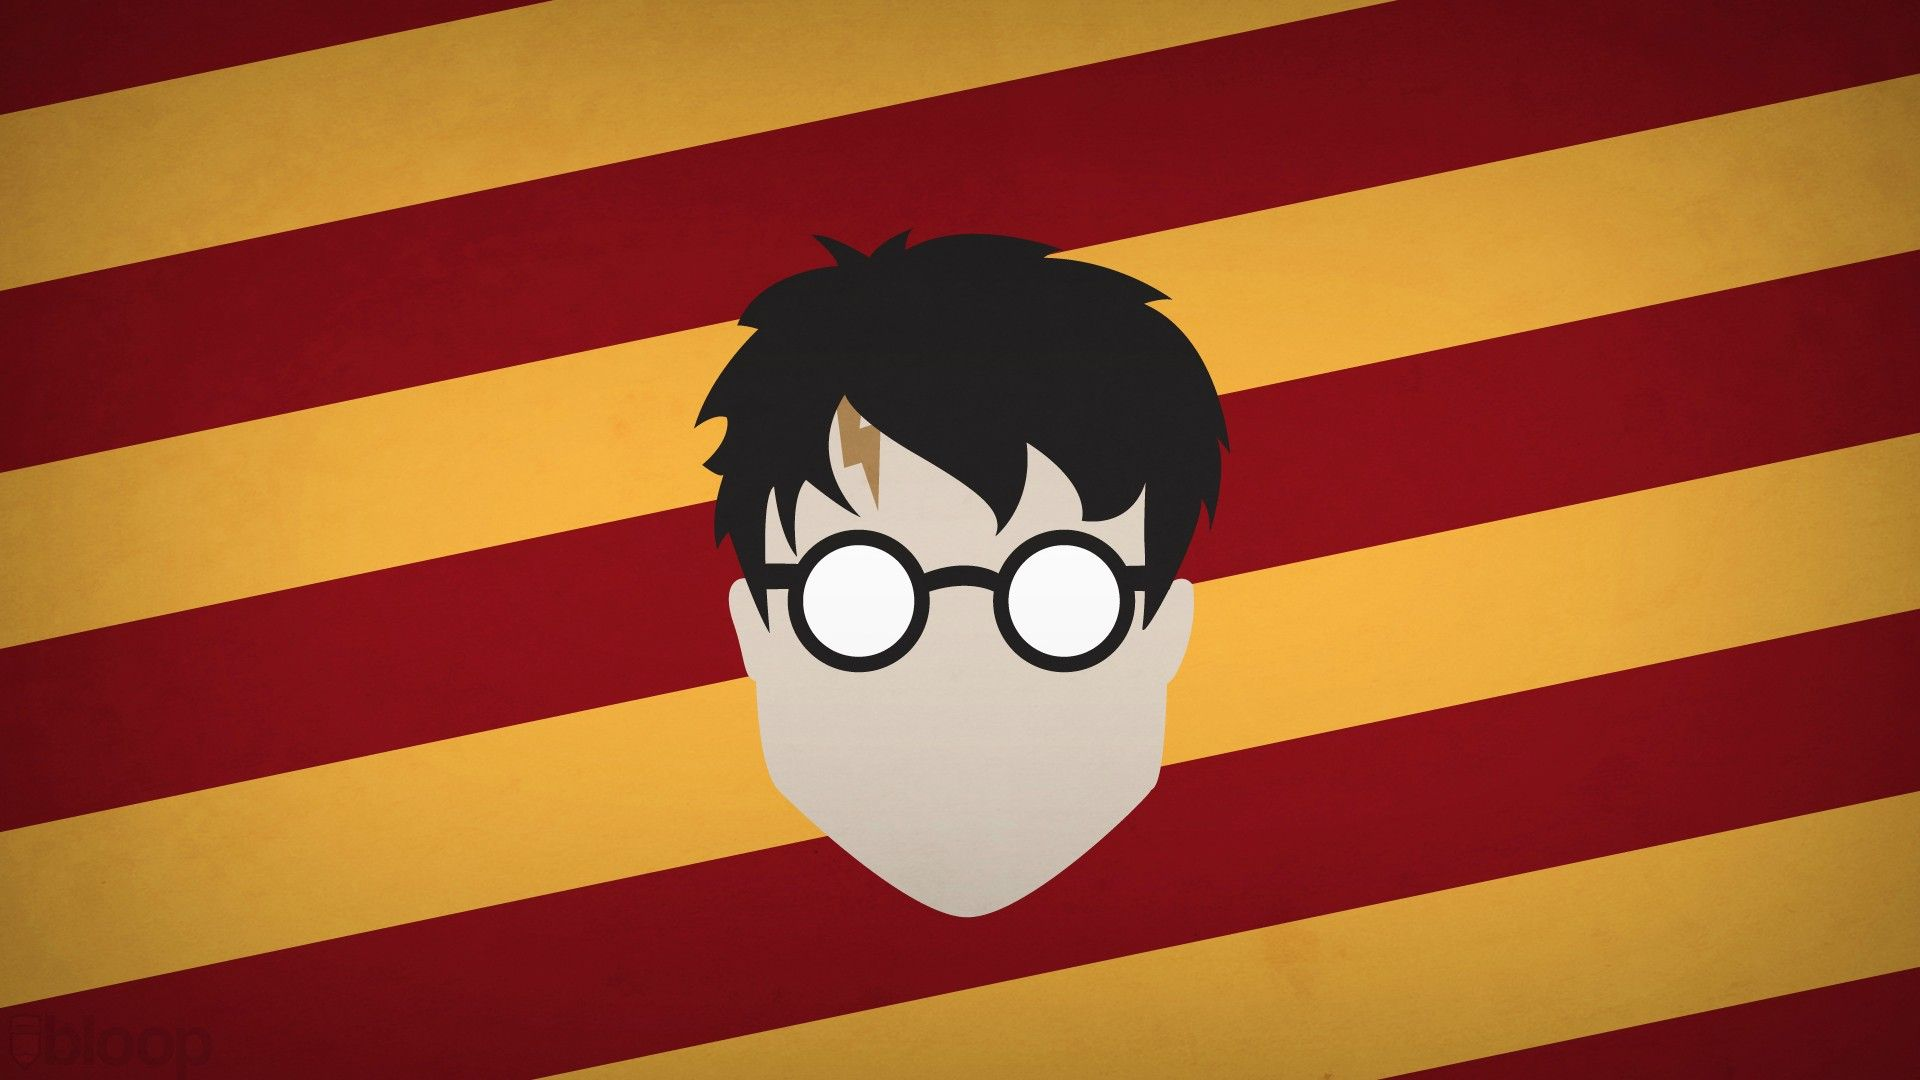 Wallpapers Mostly Geeky Nerdy Stuff Nothing Too Artsy Album On Imgur Harry Potter Wallpaper Harry Potter Cartoon Harry Potter Pictures